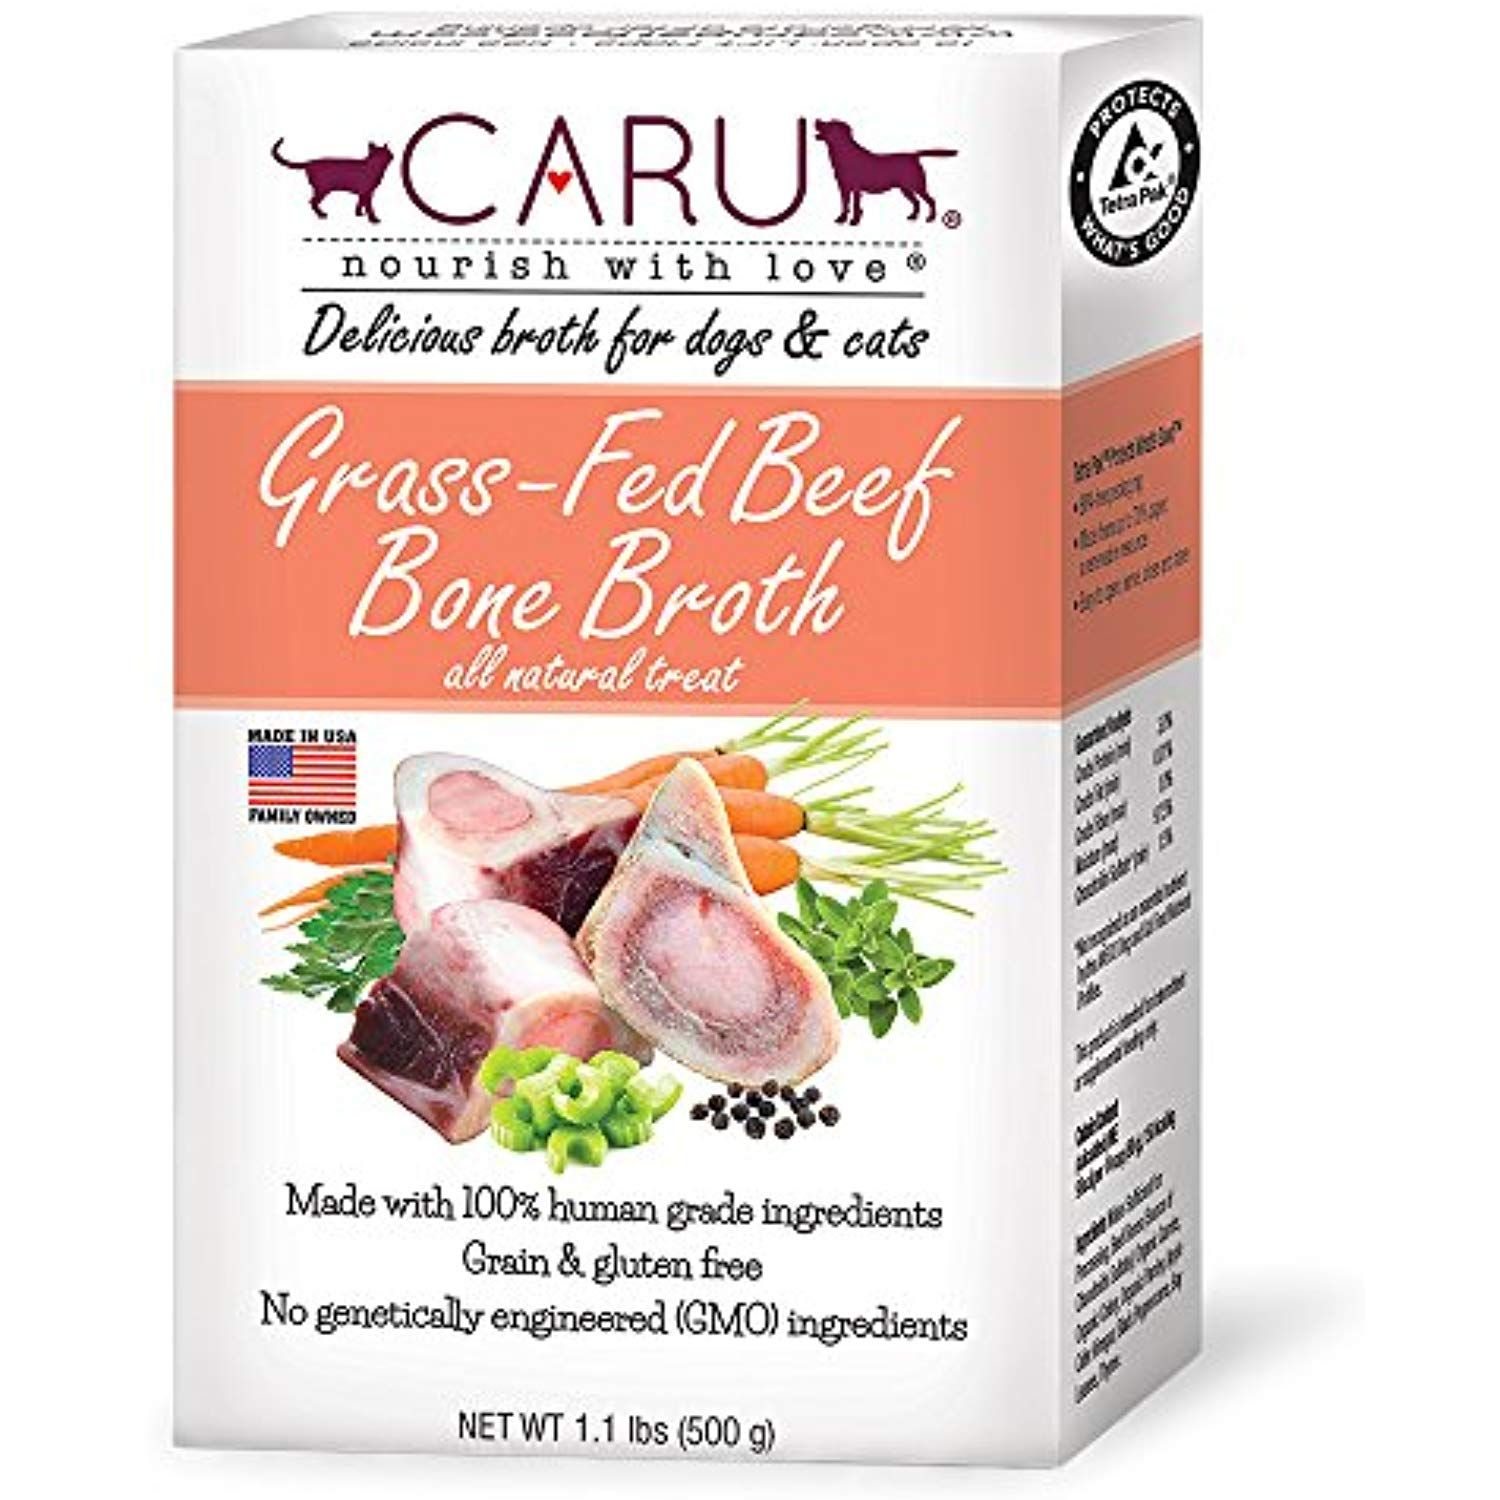 Caru GrassFed Beef Bone Broth for Dogs and Cats